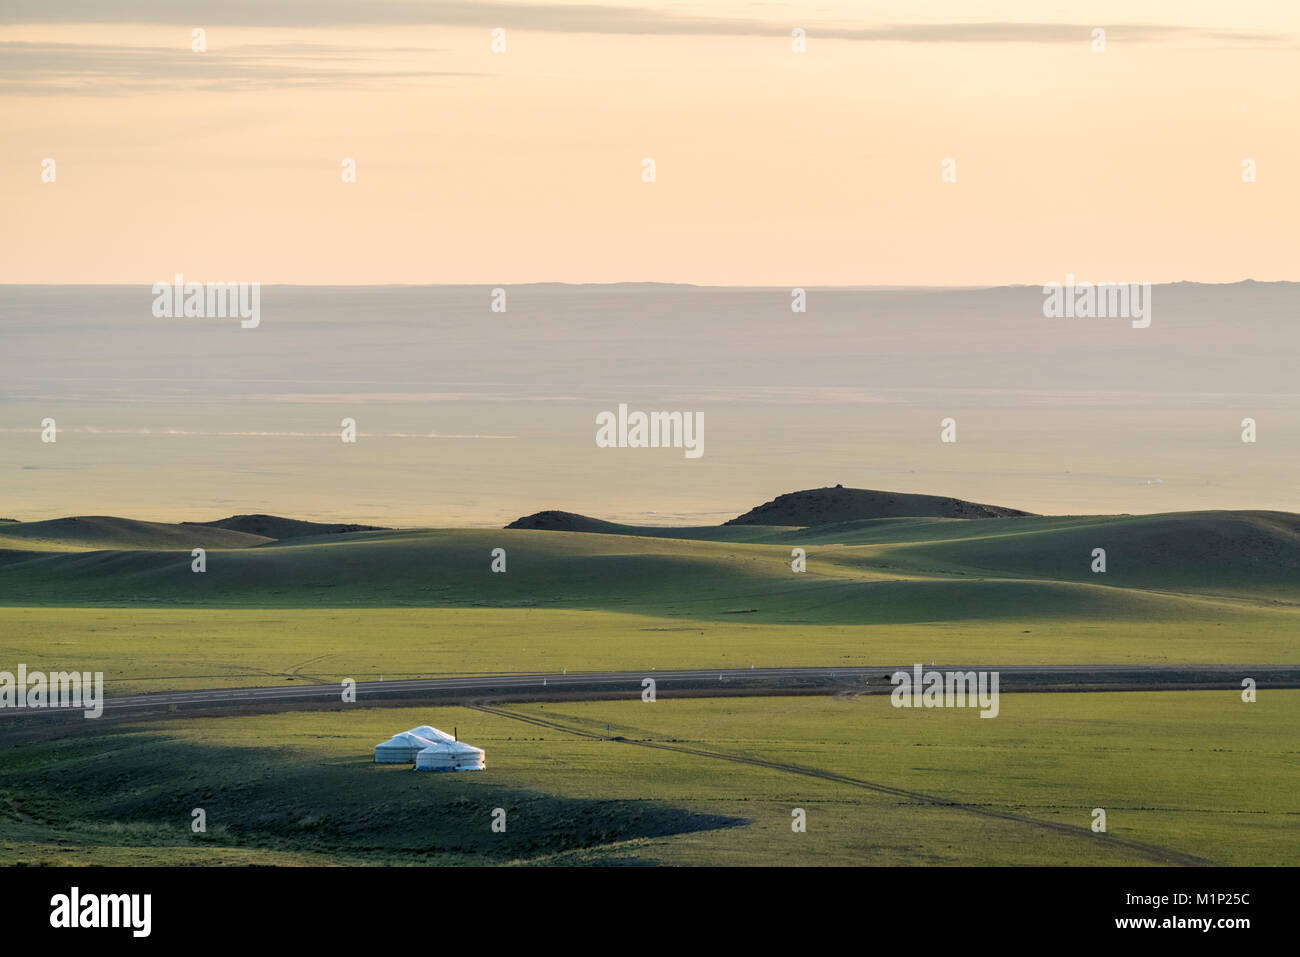 Nomadic camp and hills, Bayandalai district, South Gobi province, Mongolia, Central Asia, Asia - Stock Image